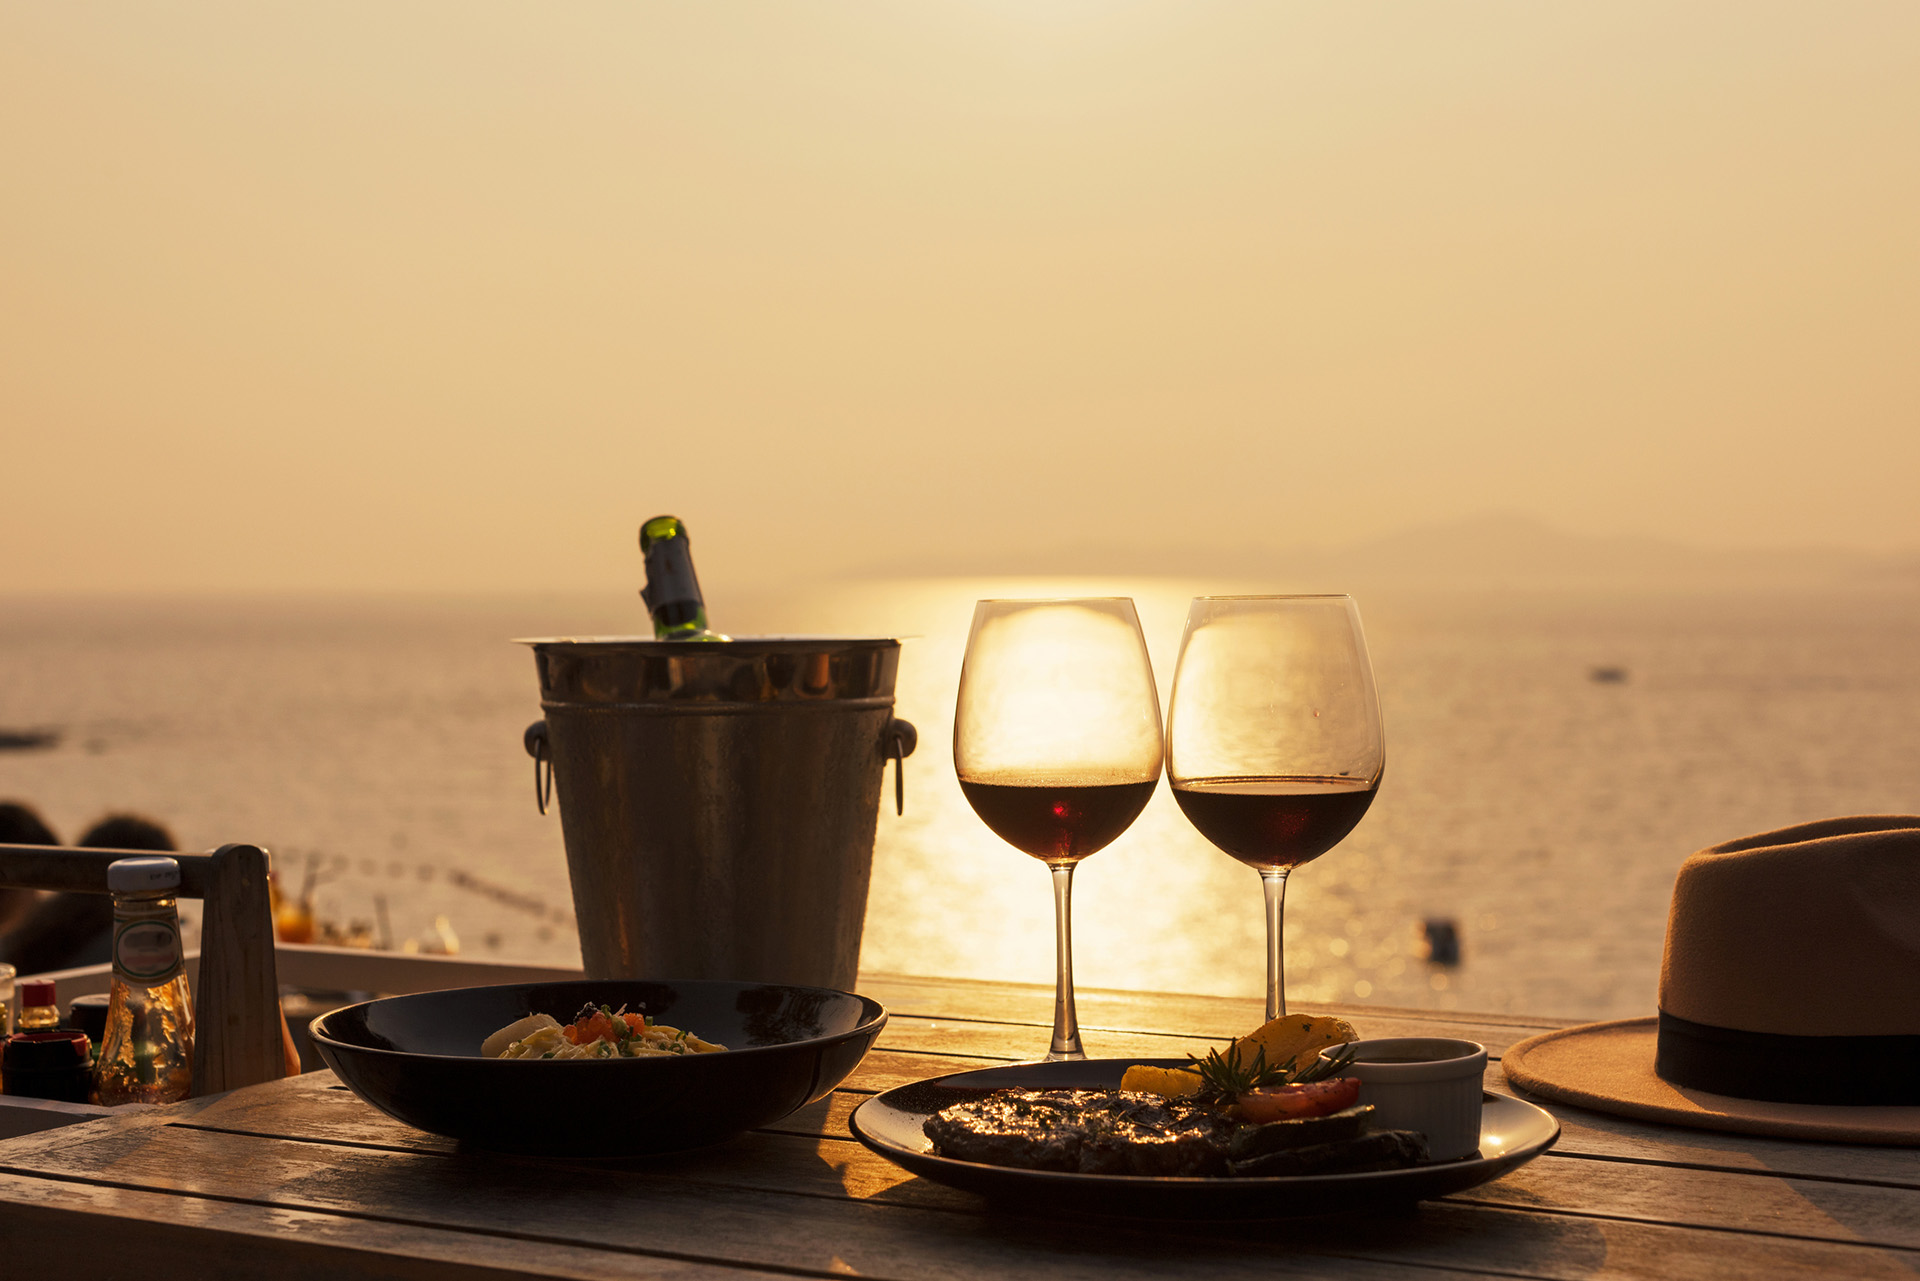 Outdoor dining for two during sunset